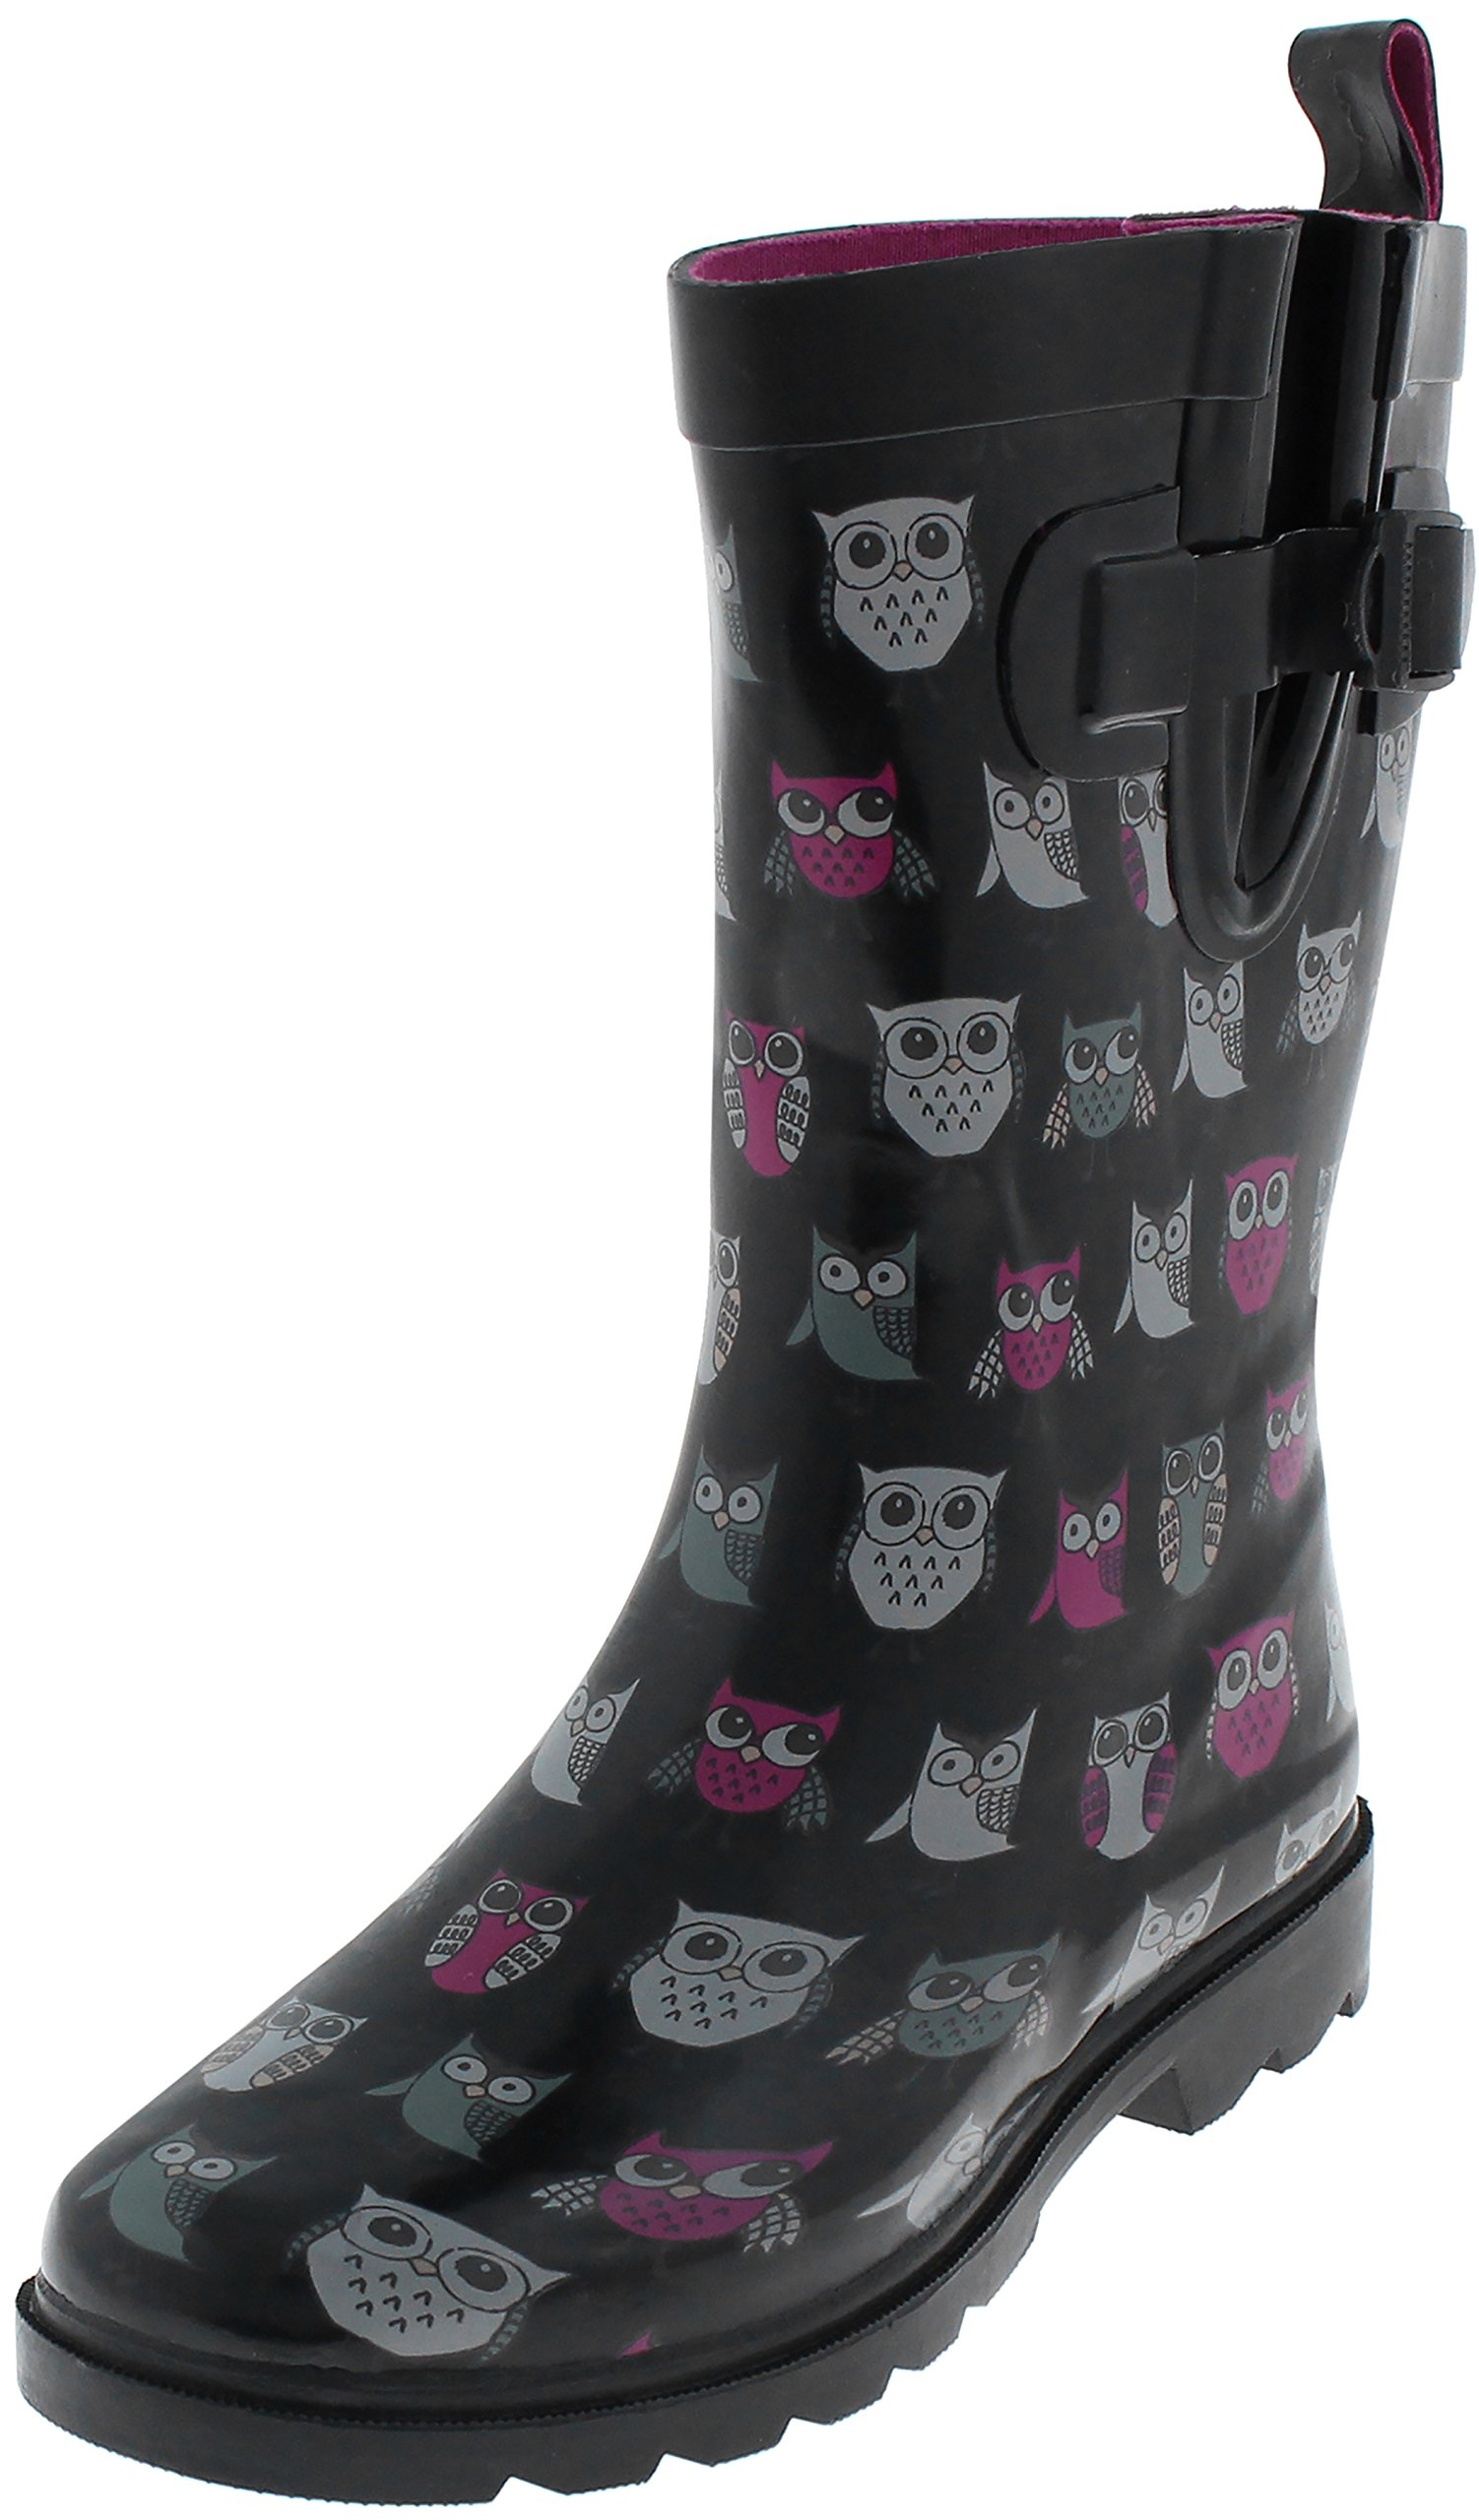 Capelli New York Ladies Sketchy Owls Printed Mid Calf Rubber Rain Boot Black Combo 8